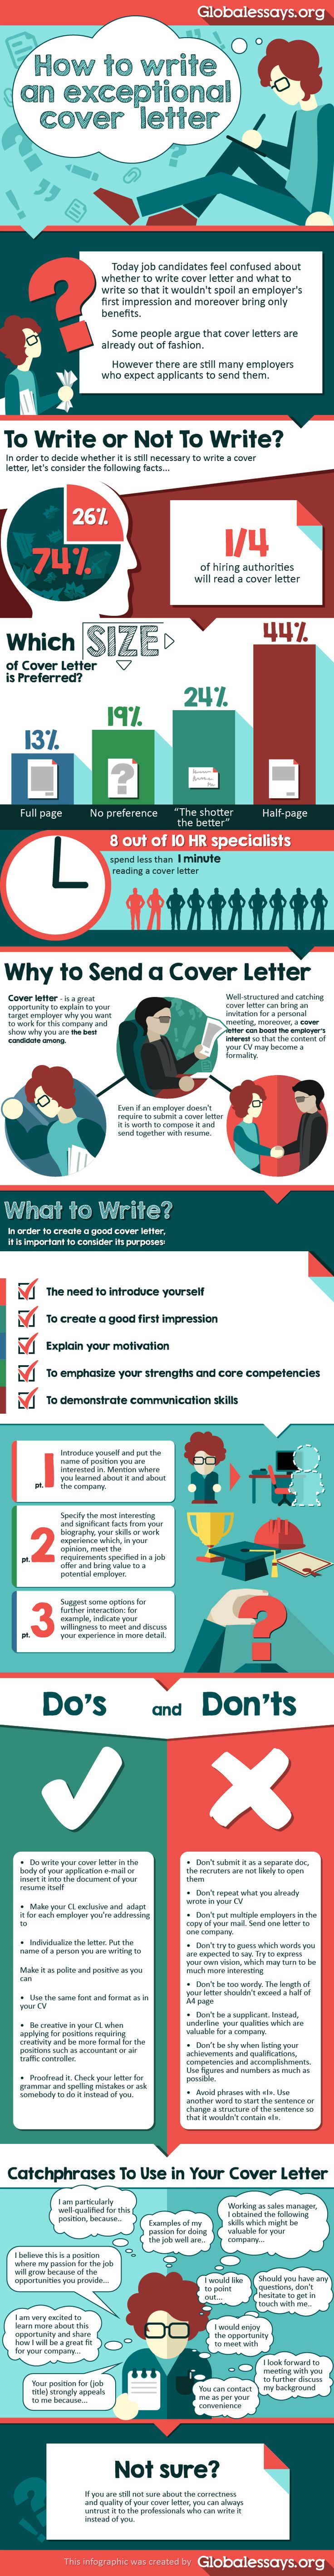 how to write an exceptional cover letter - Best Resume Cover Letter